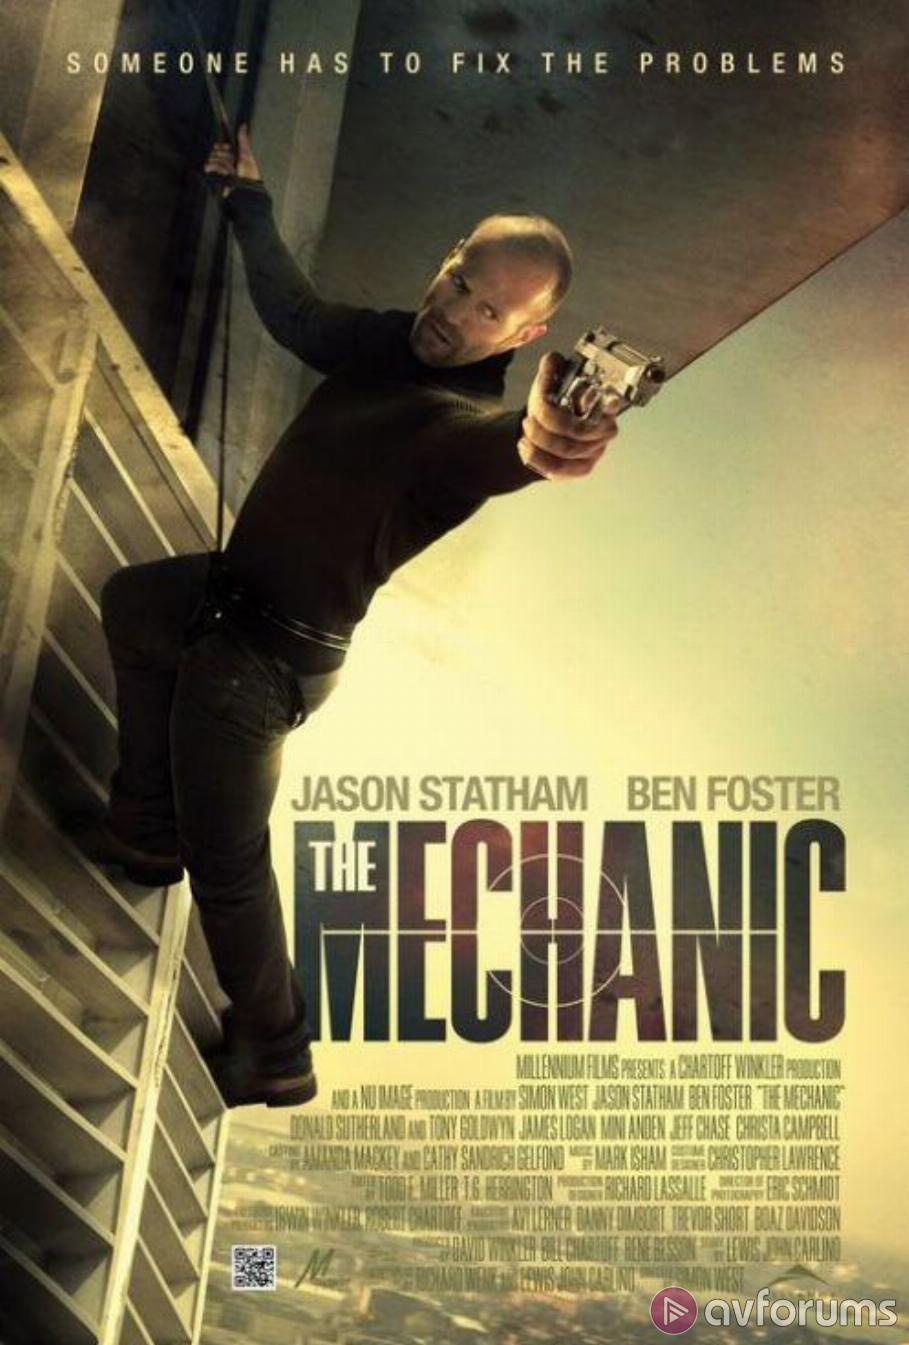 The Mechanic Review